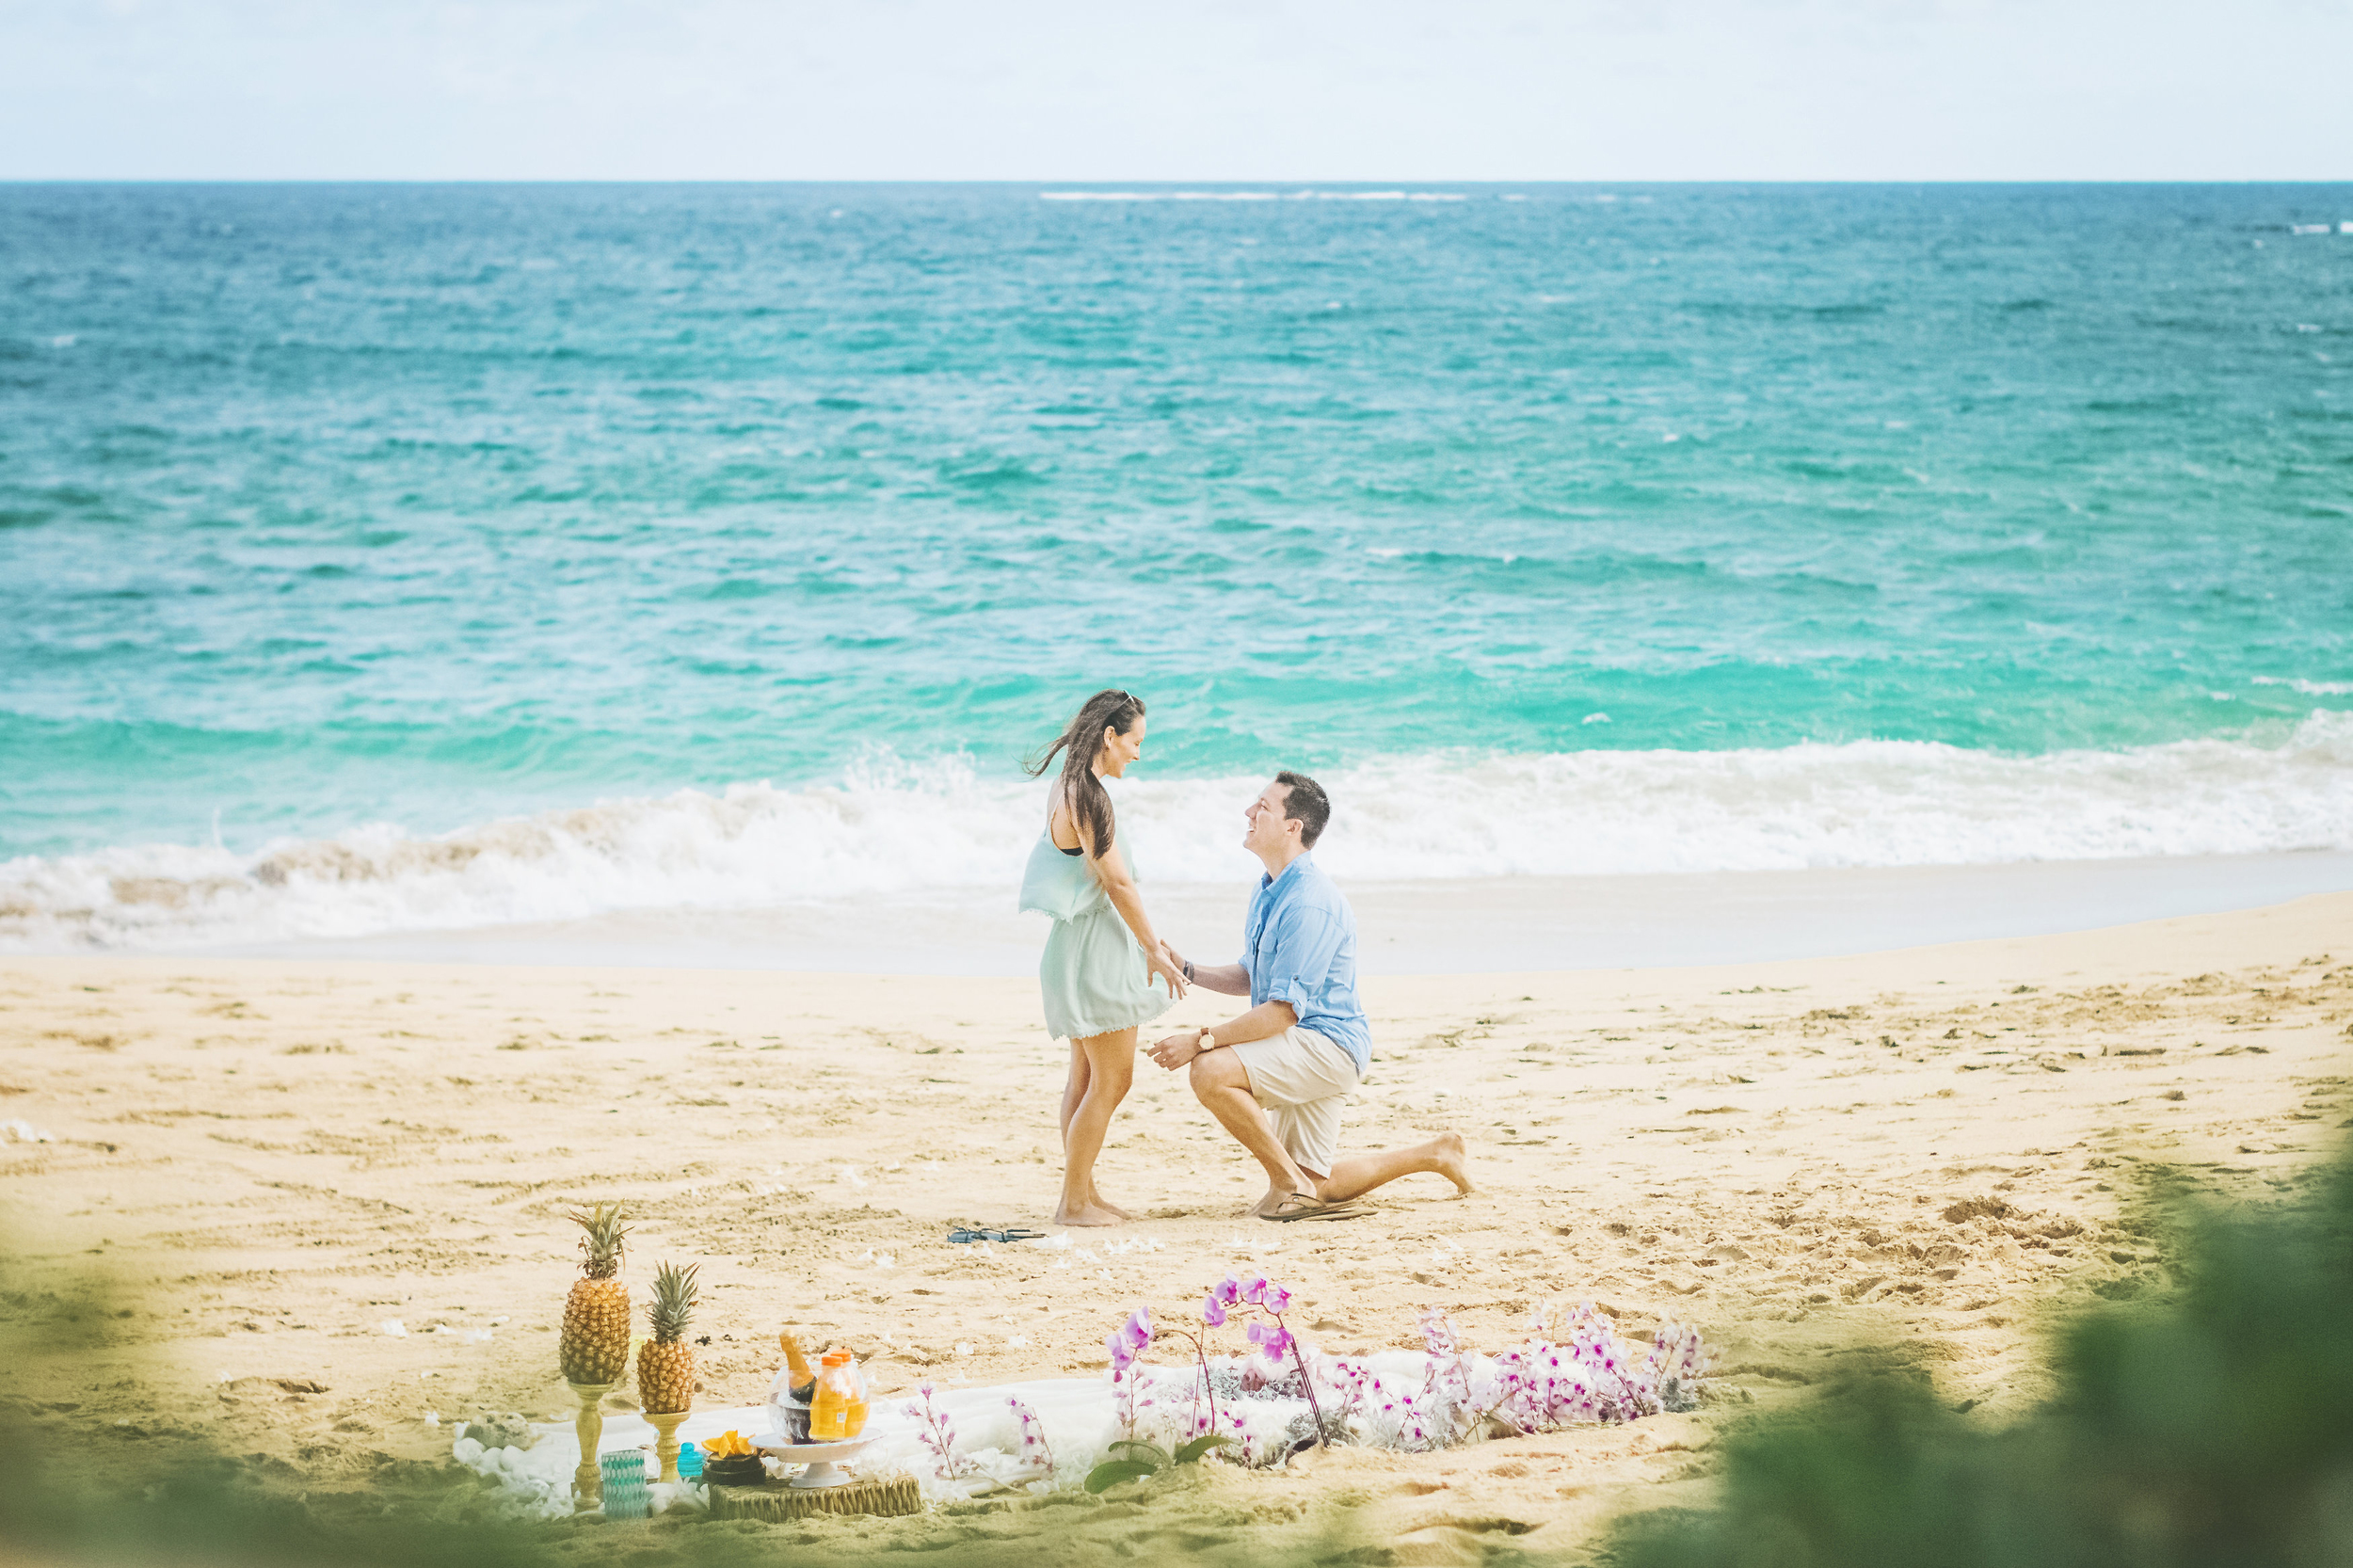 angie-diaz-photography-maui-proposal-baldwin-beach-aimee-tyler-10.jpg